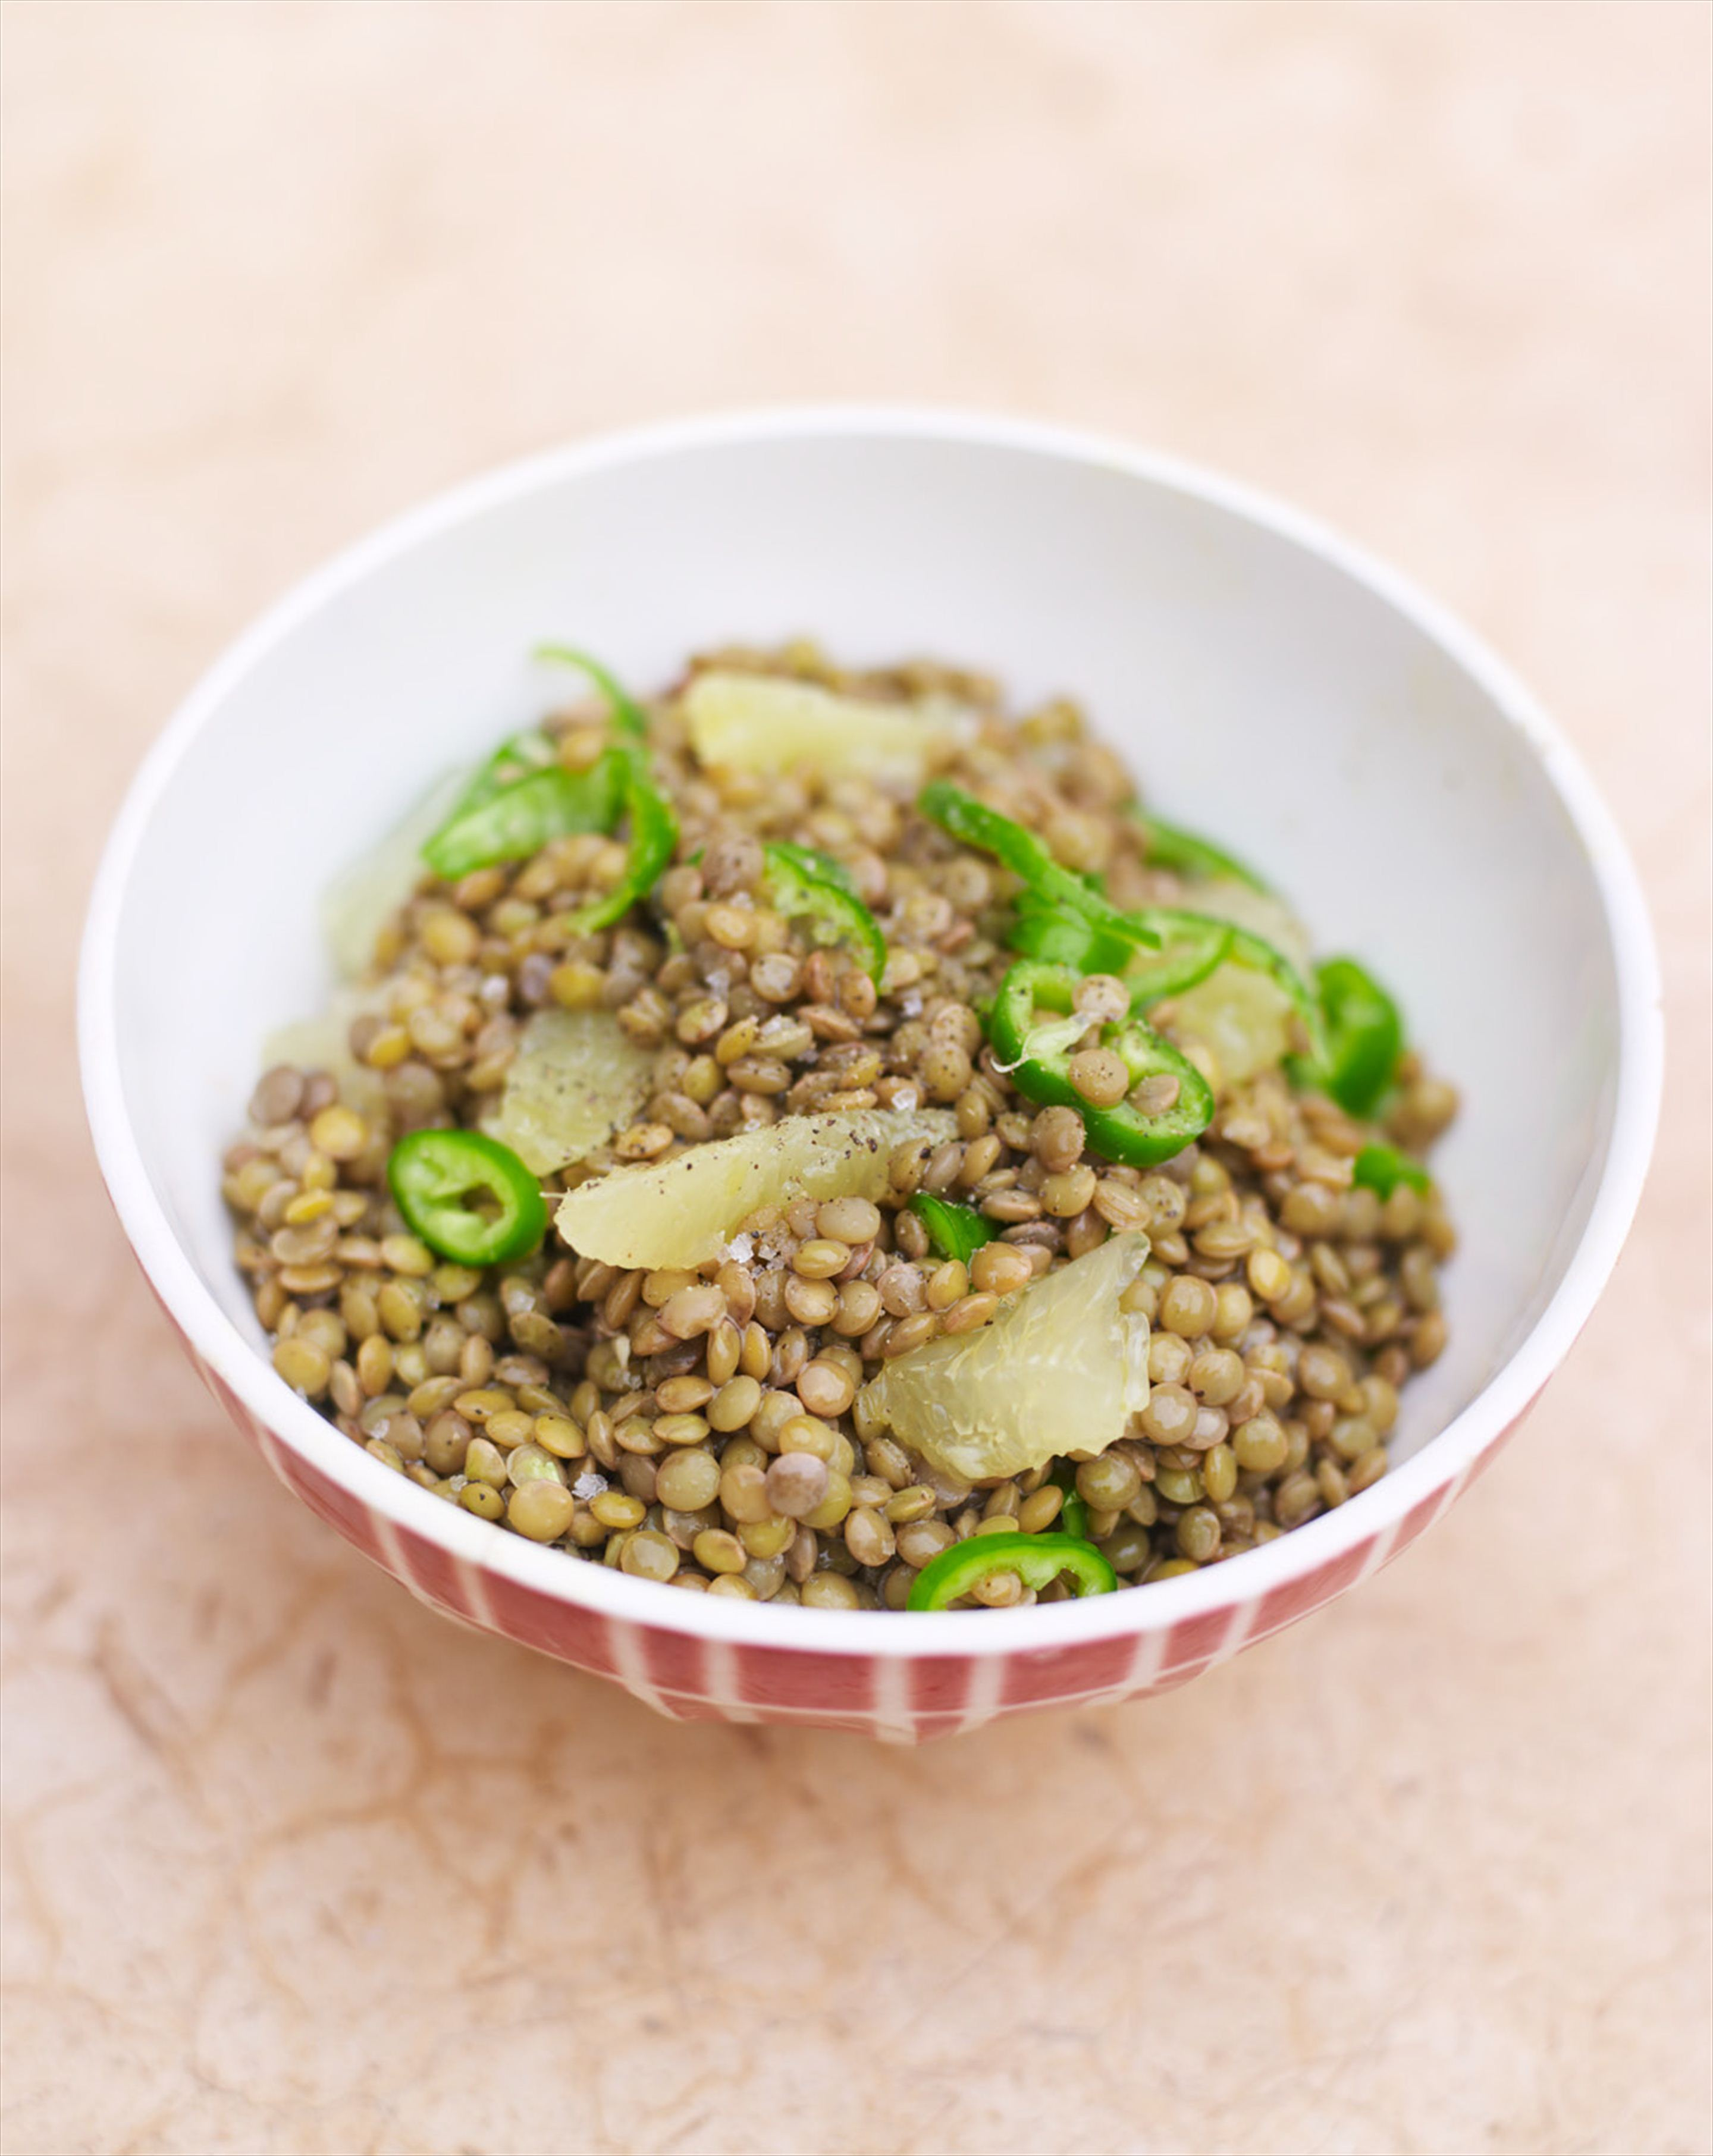 Lentil, lemon & chilli salad